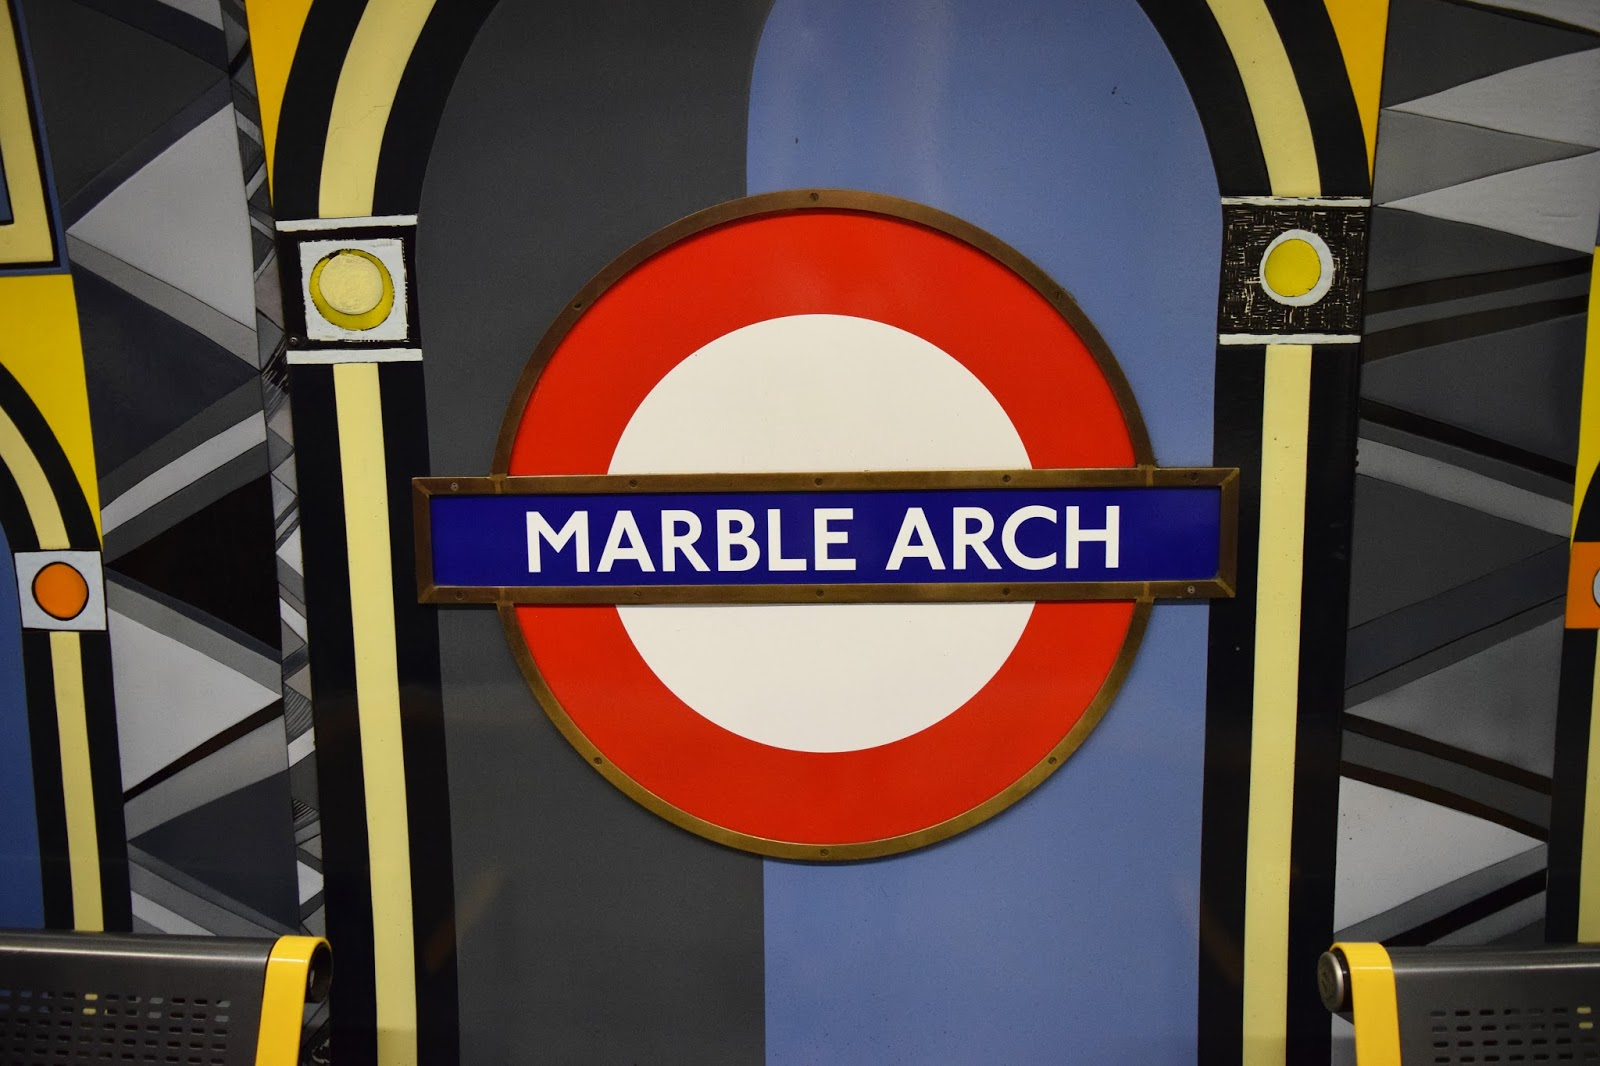 Marble Arch Tube station sign